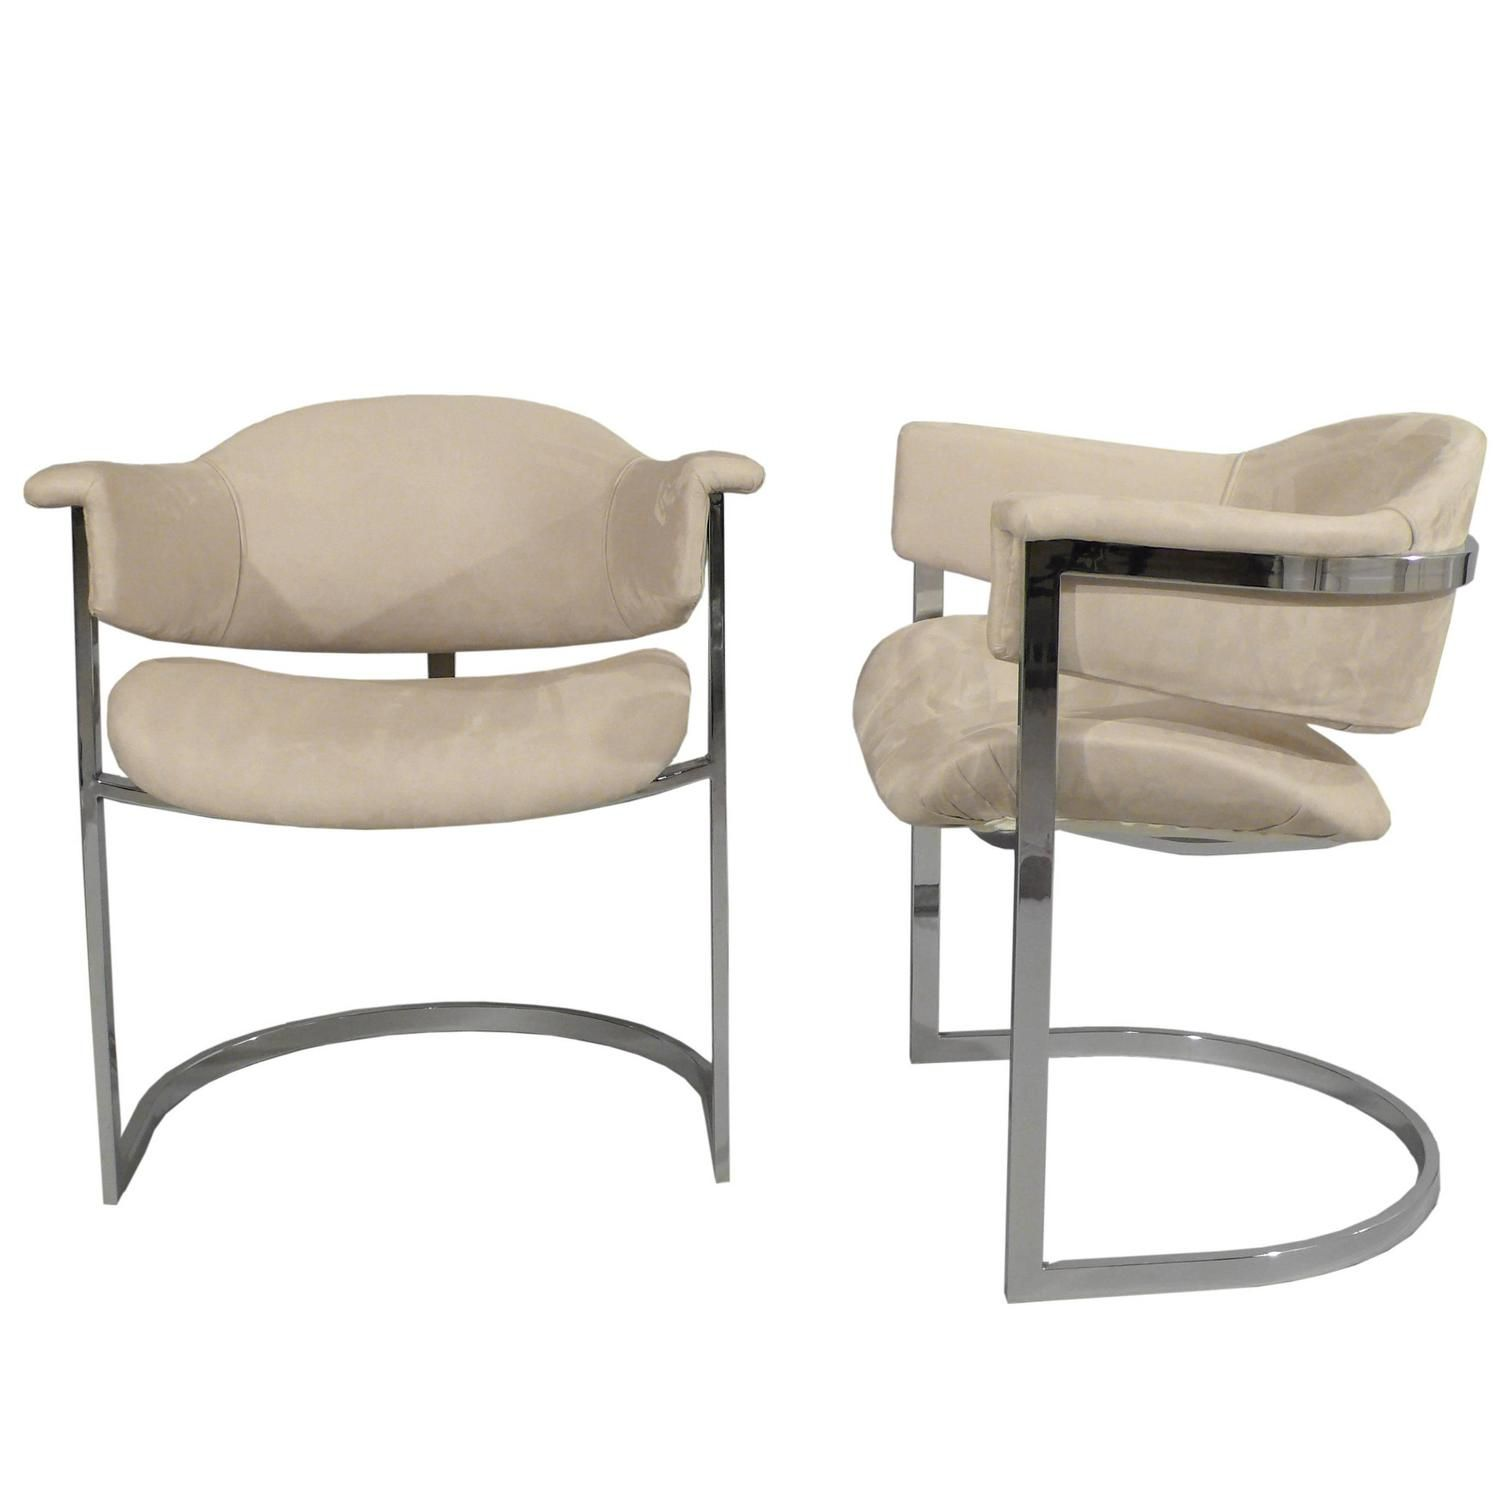 Pair Of Armchairs By Mario Sabot 1stdibs Com Armchair Vintage Armchair Furniture